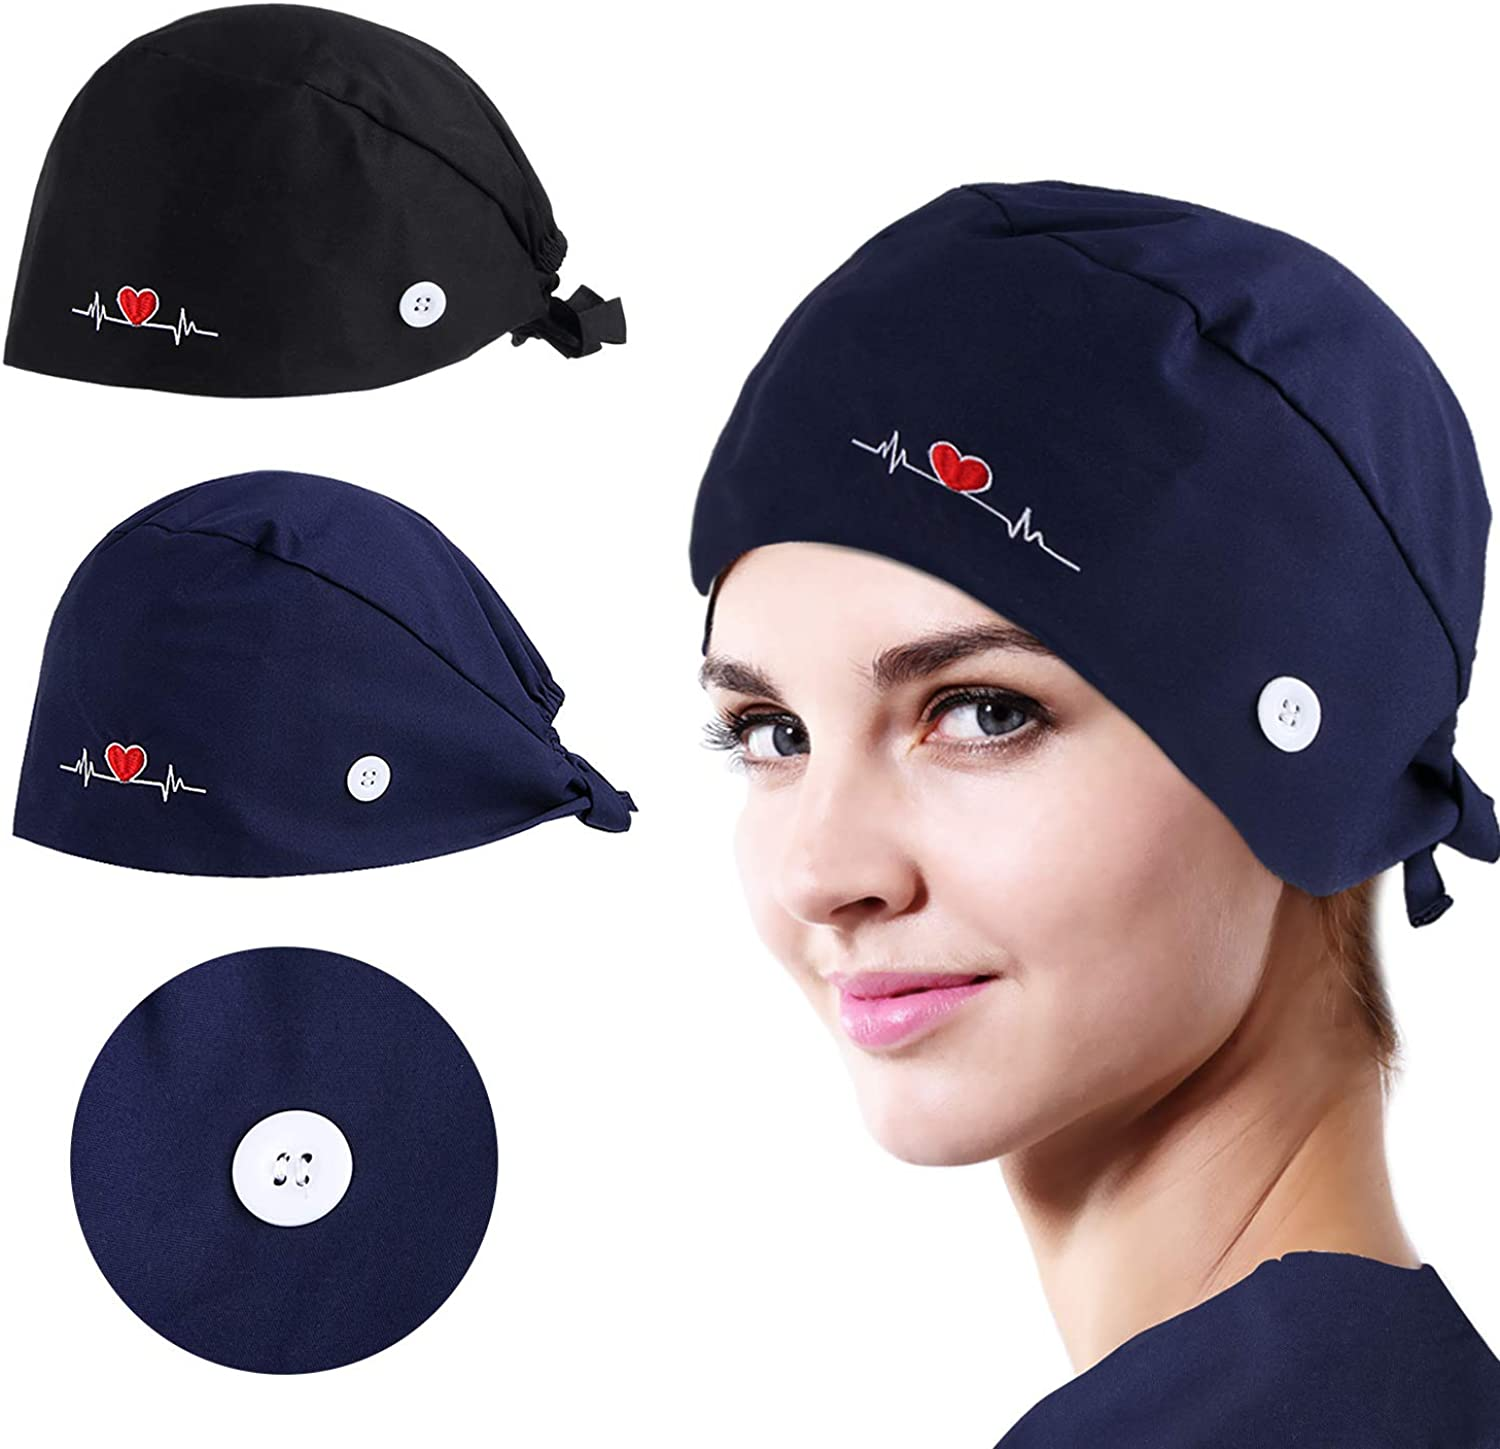 NOVWANG 2 Pcs Working Caps Love Embroidered Style Head Cover Hats Adjustable Cotton Sweatband Caps (Black+Dark Blue): Clothing